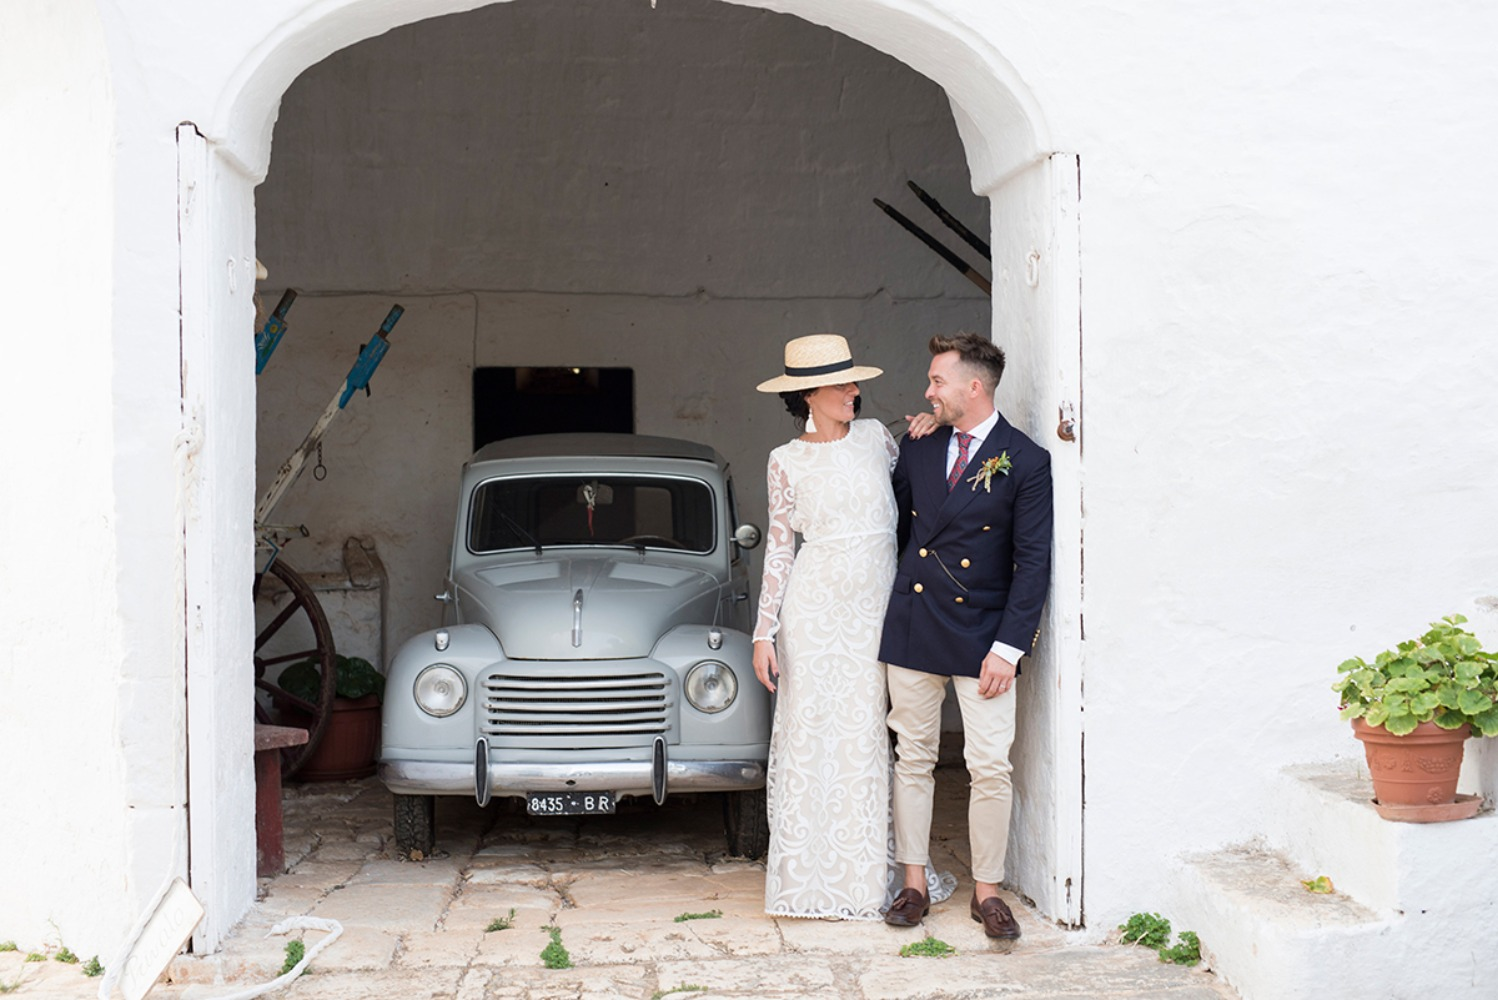 sweet wedding couple with vintage car